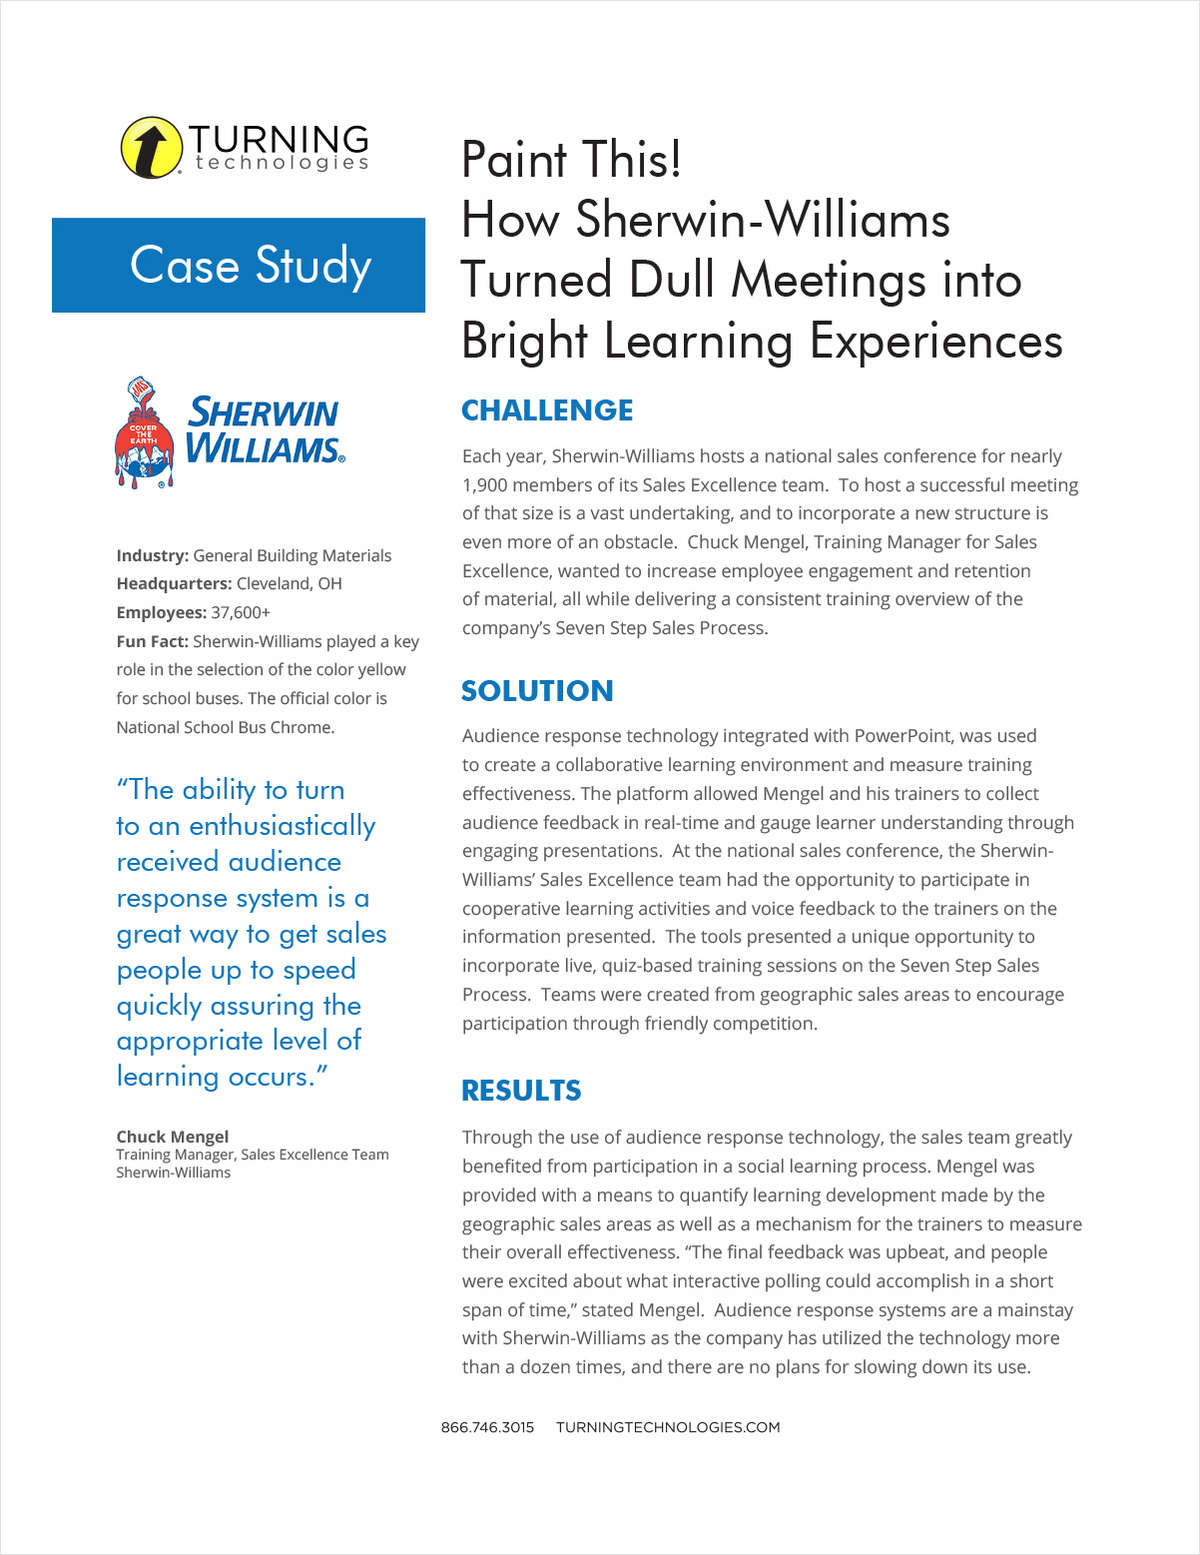 Paint This!  How Sherwin-Williams Turned Dull Meetings into Bright Learning Experiences